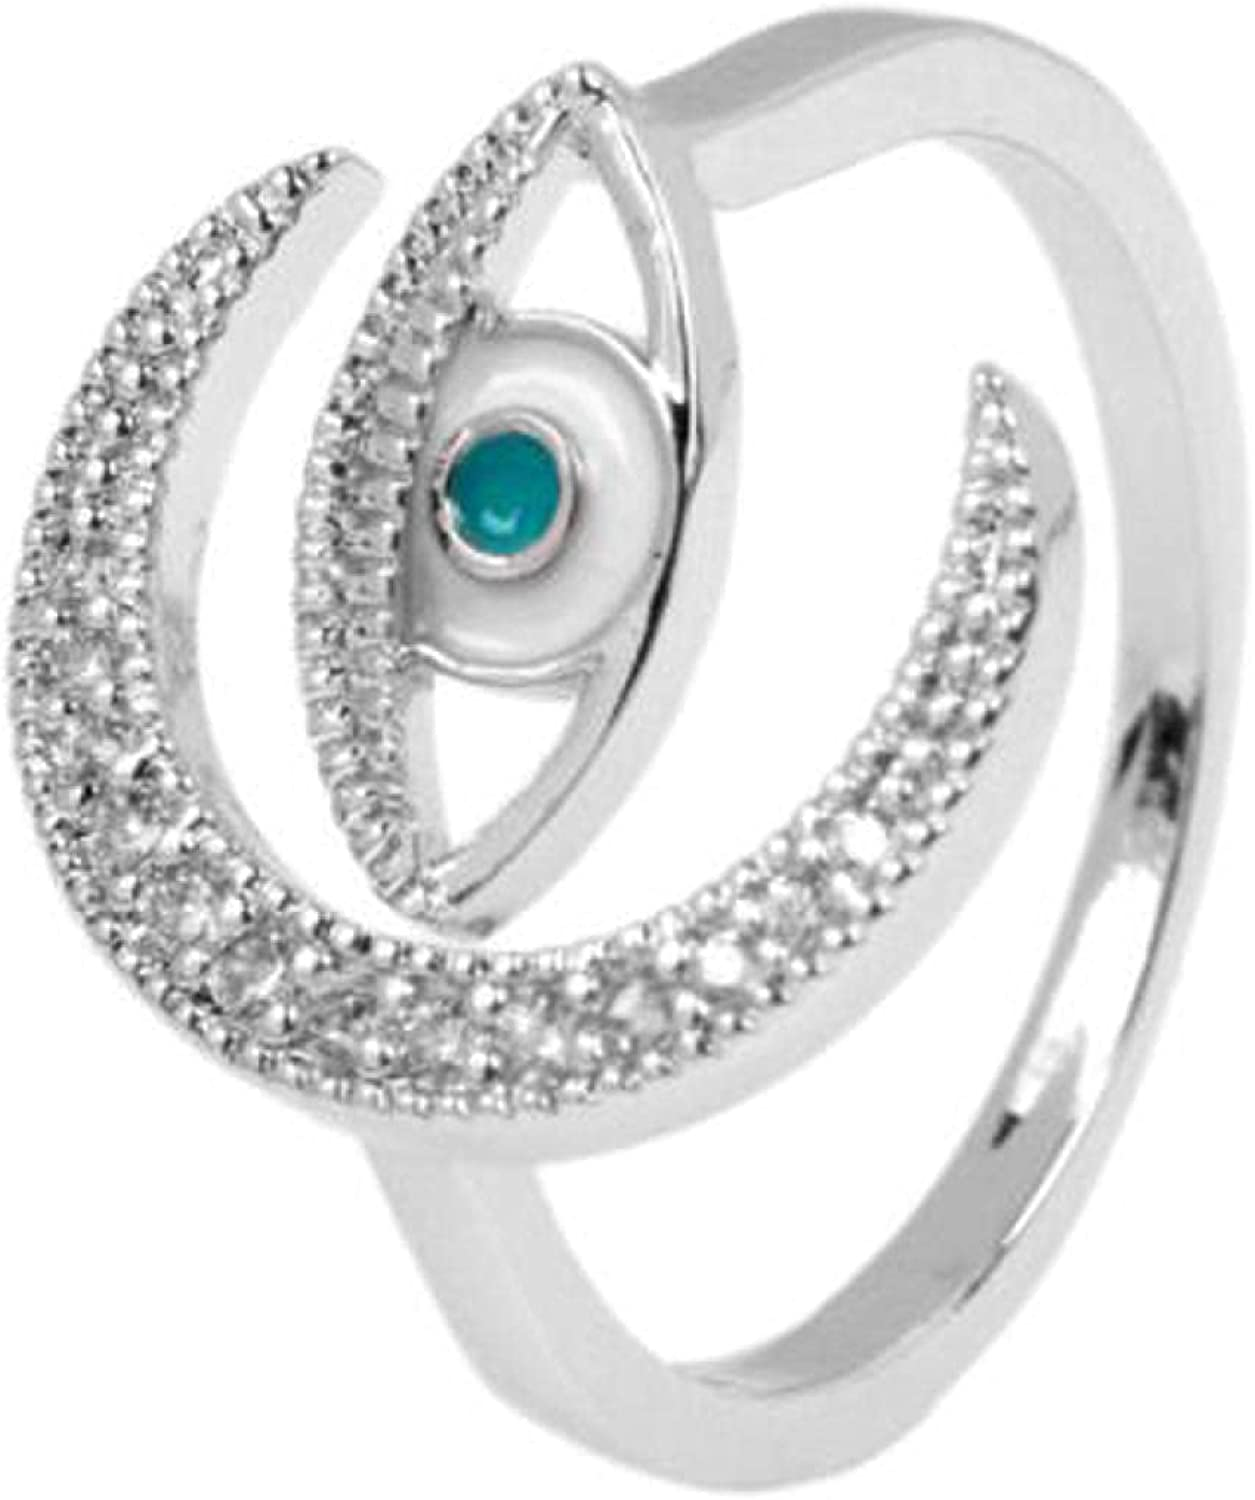 Turkish Eye Ring Quality New product! New type inspection Adjustable Silver Finger Color Gold